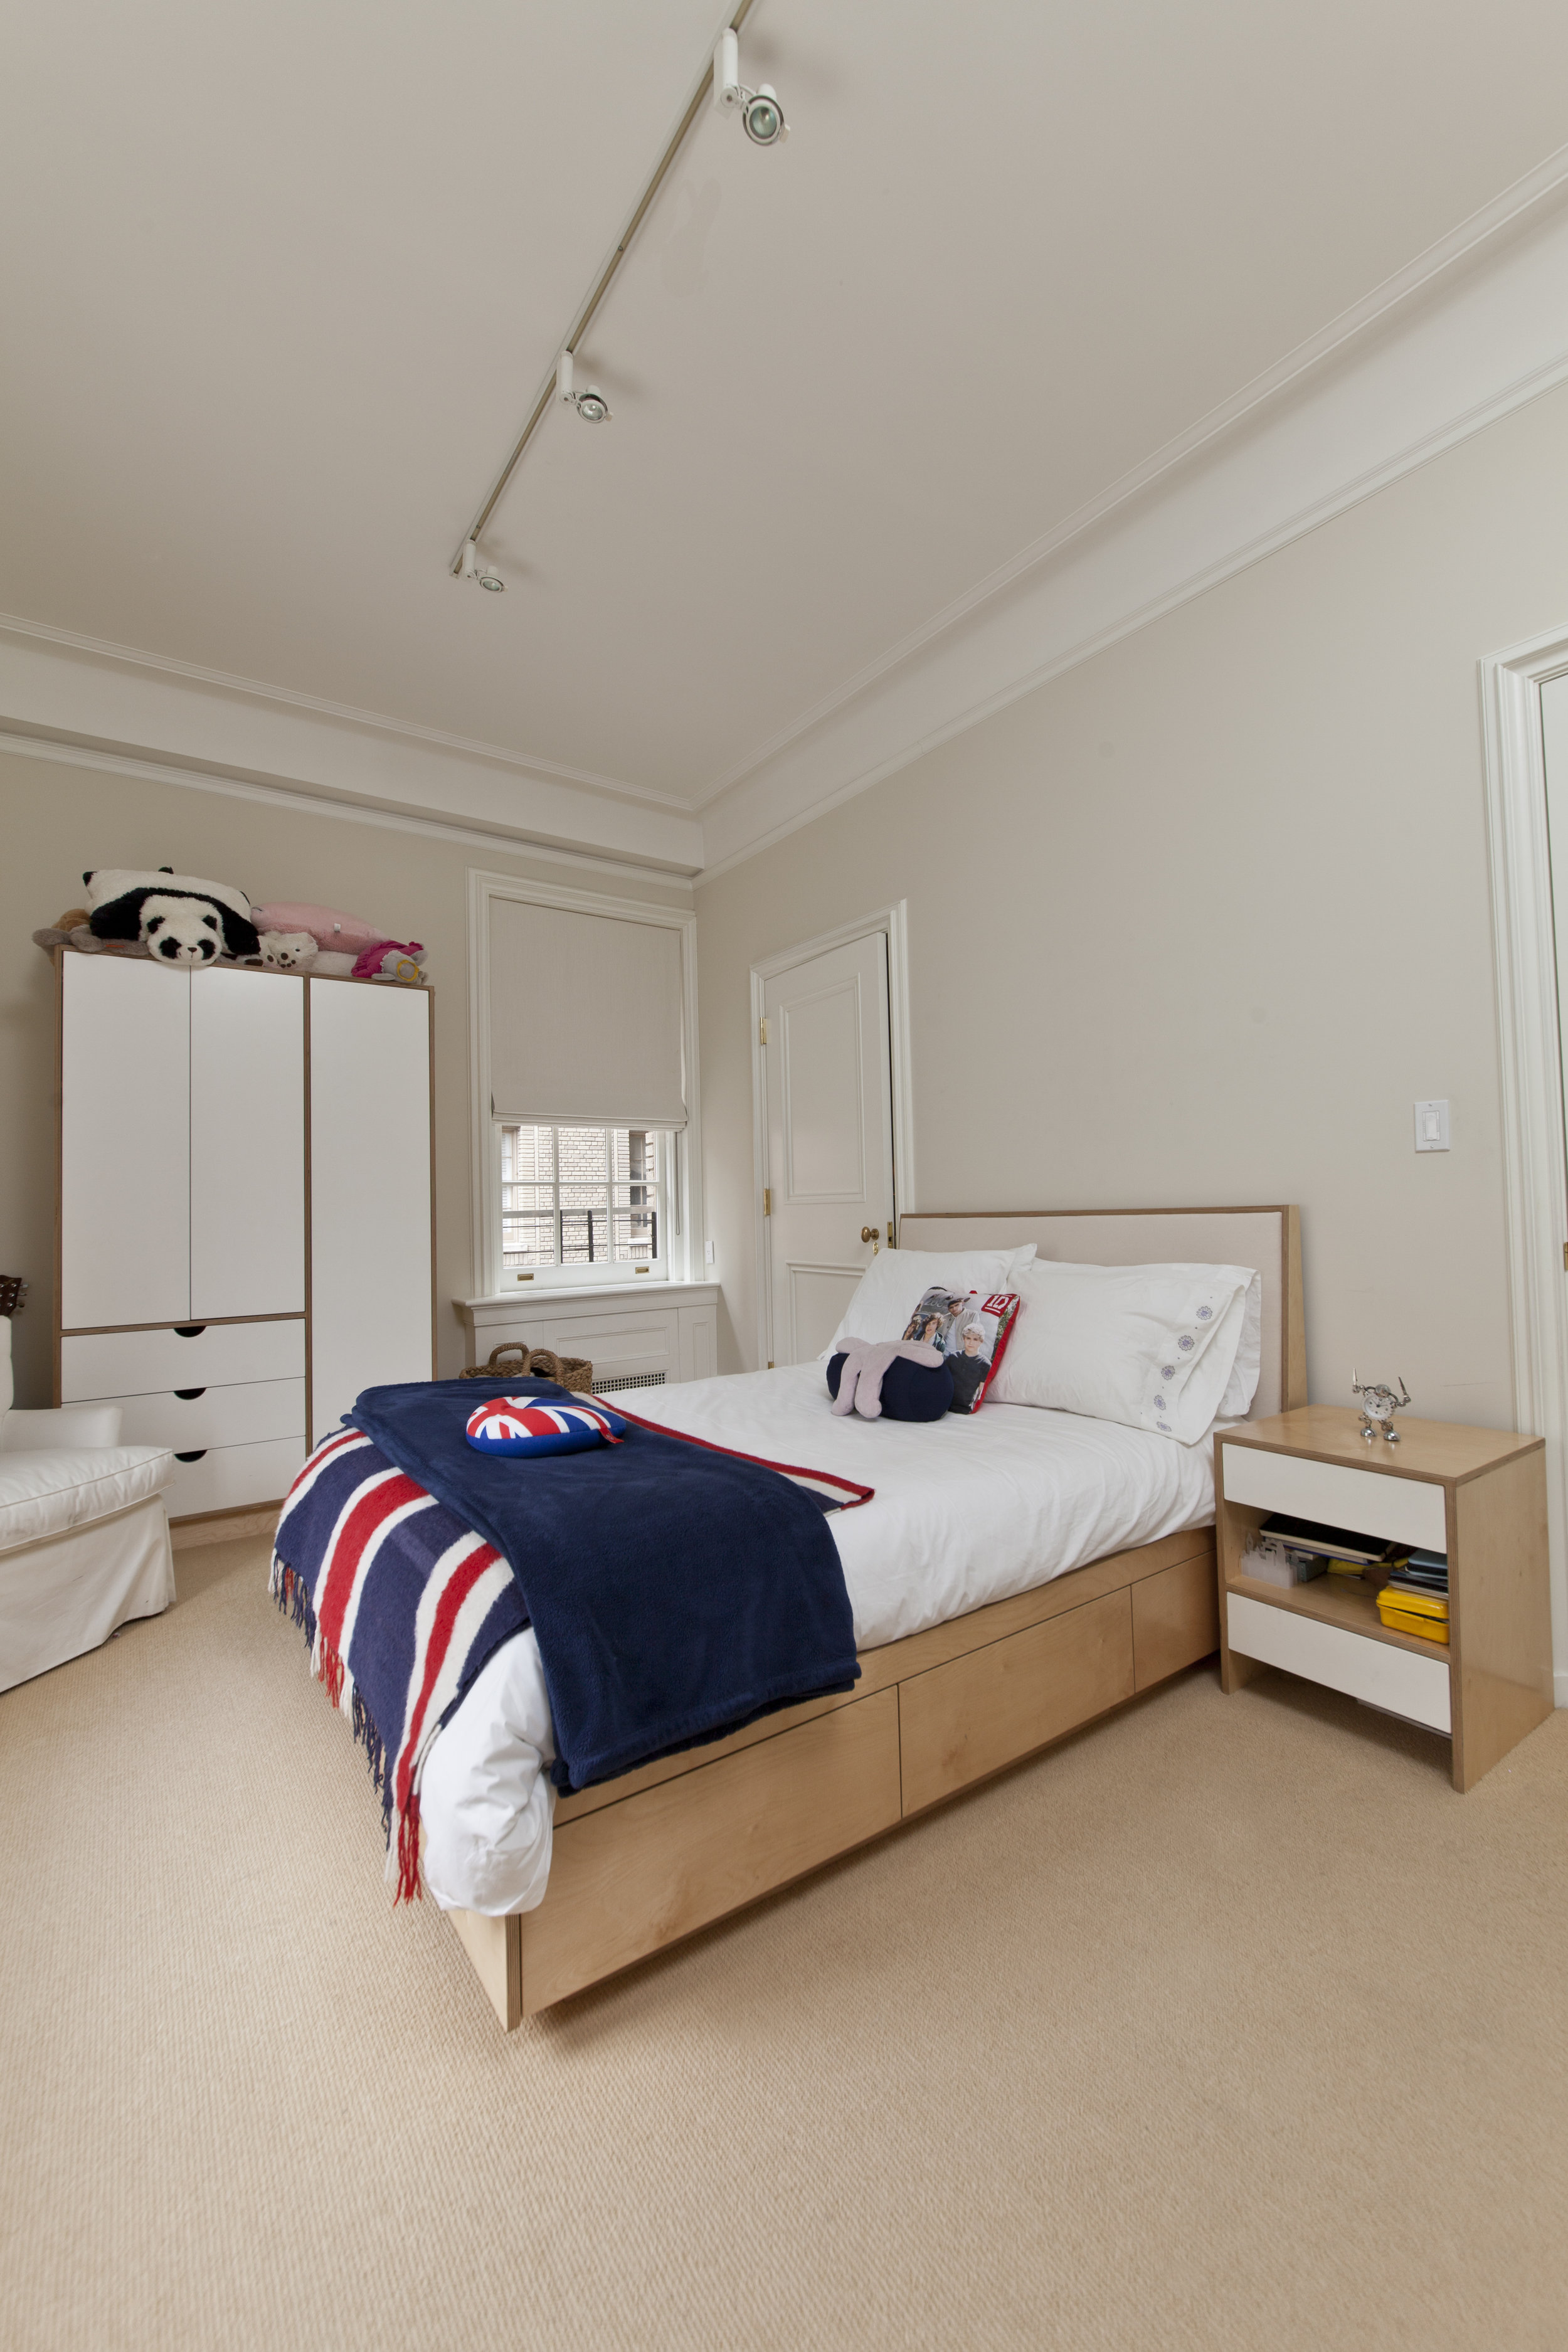 Platform bed with Storage Drawers and Night table